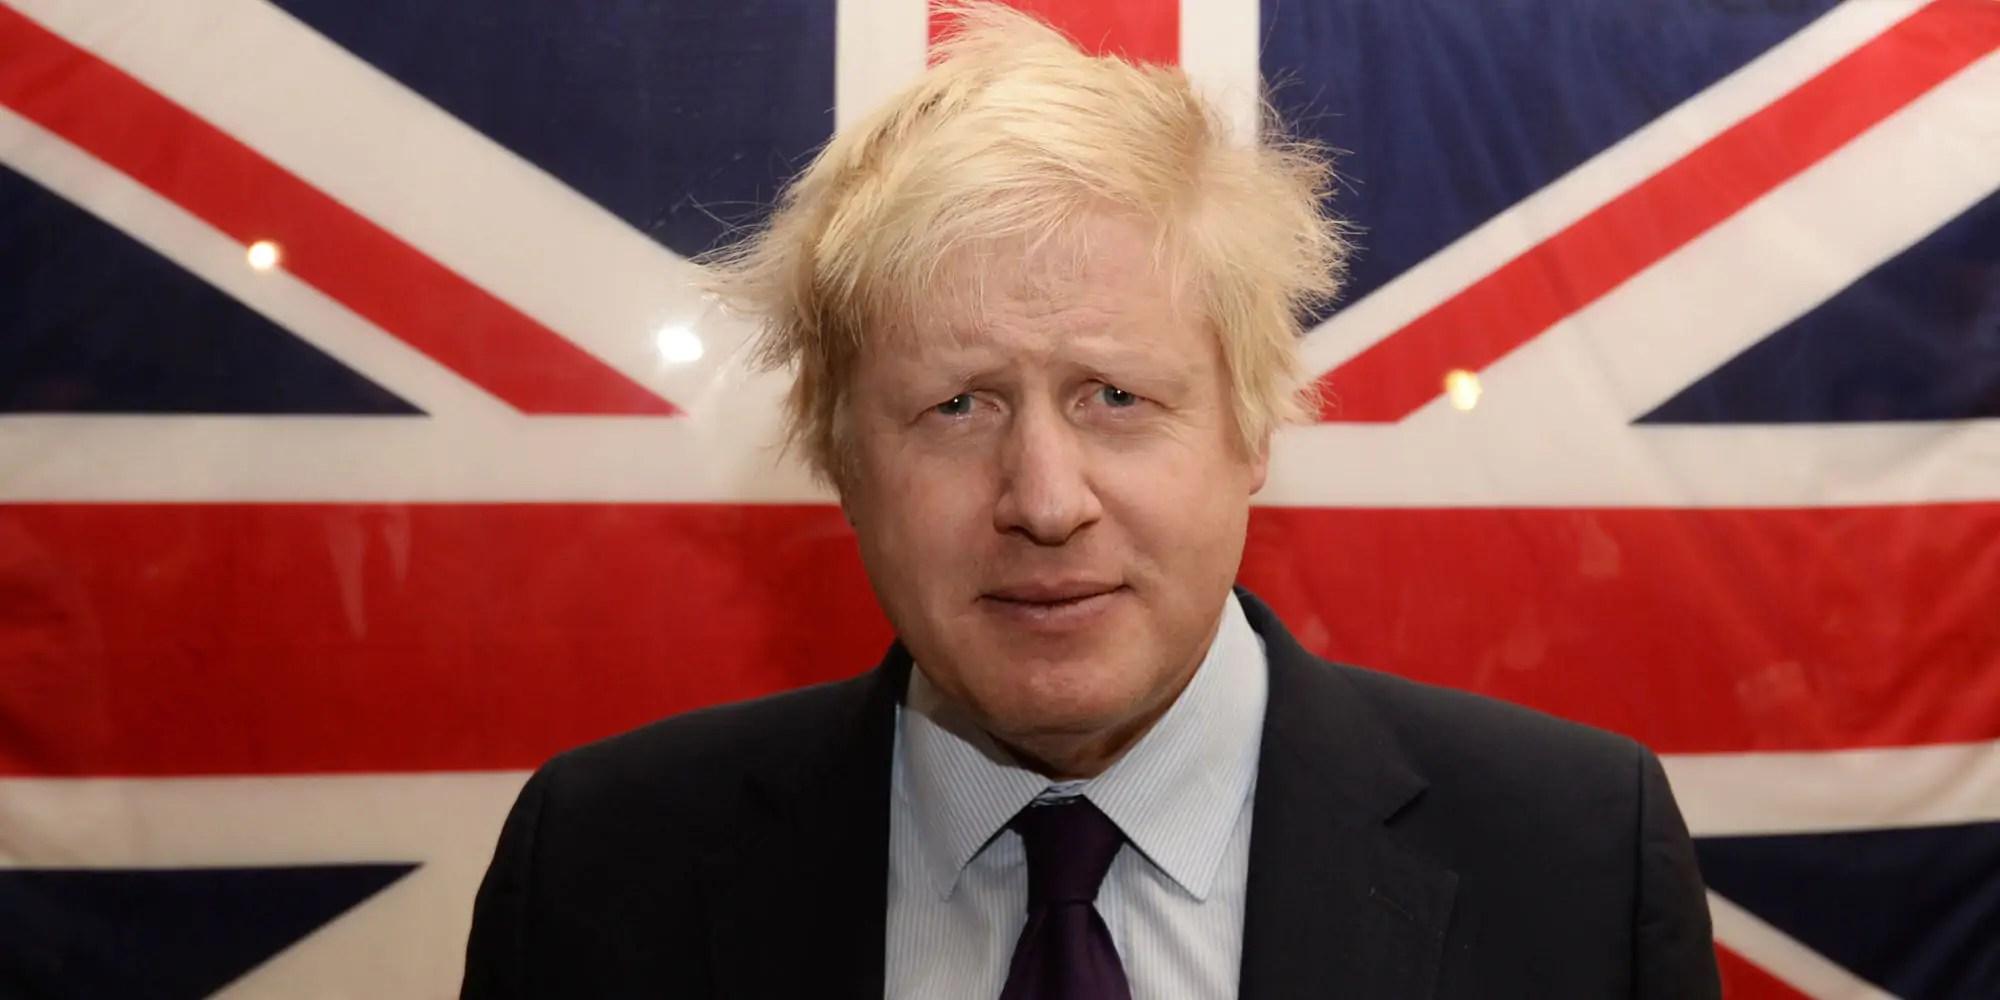 https://i1.wp.com/www.republica.com/wp-content/uploads/2016/02/BORIS-JOHNSON.jpg